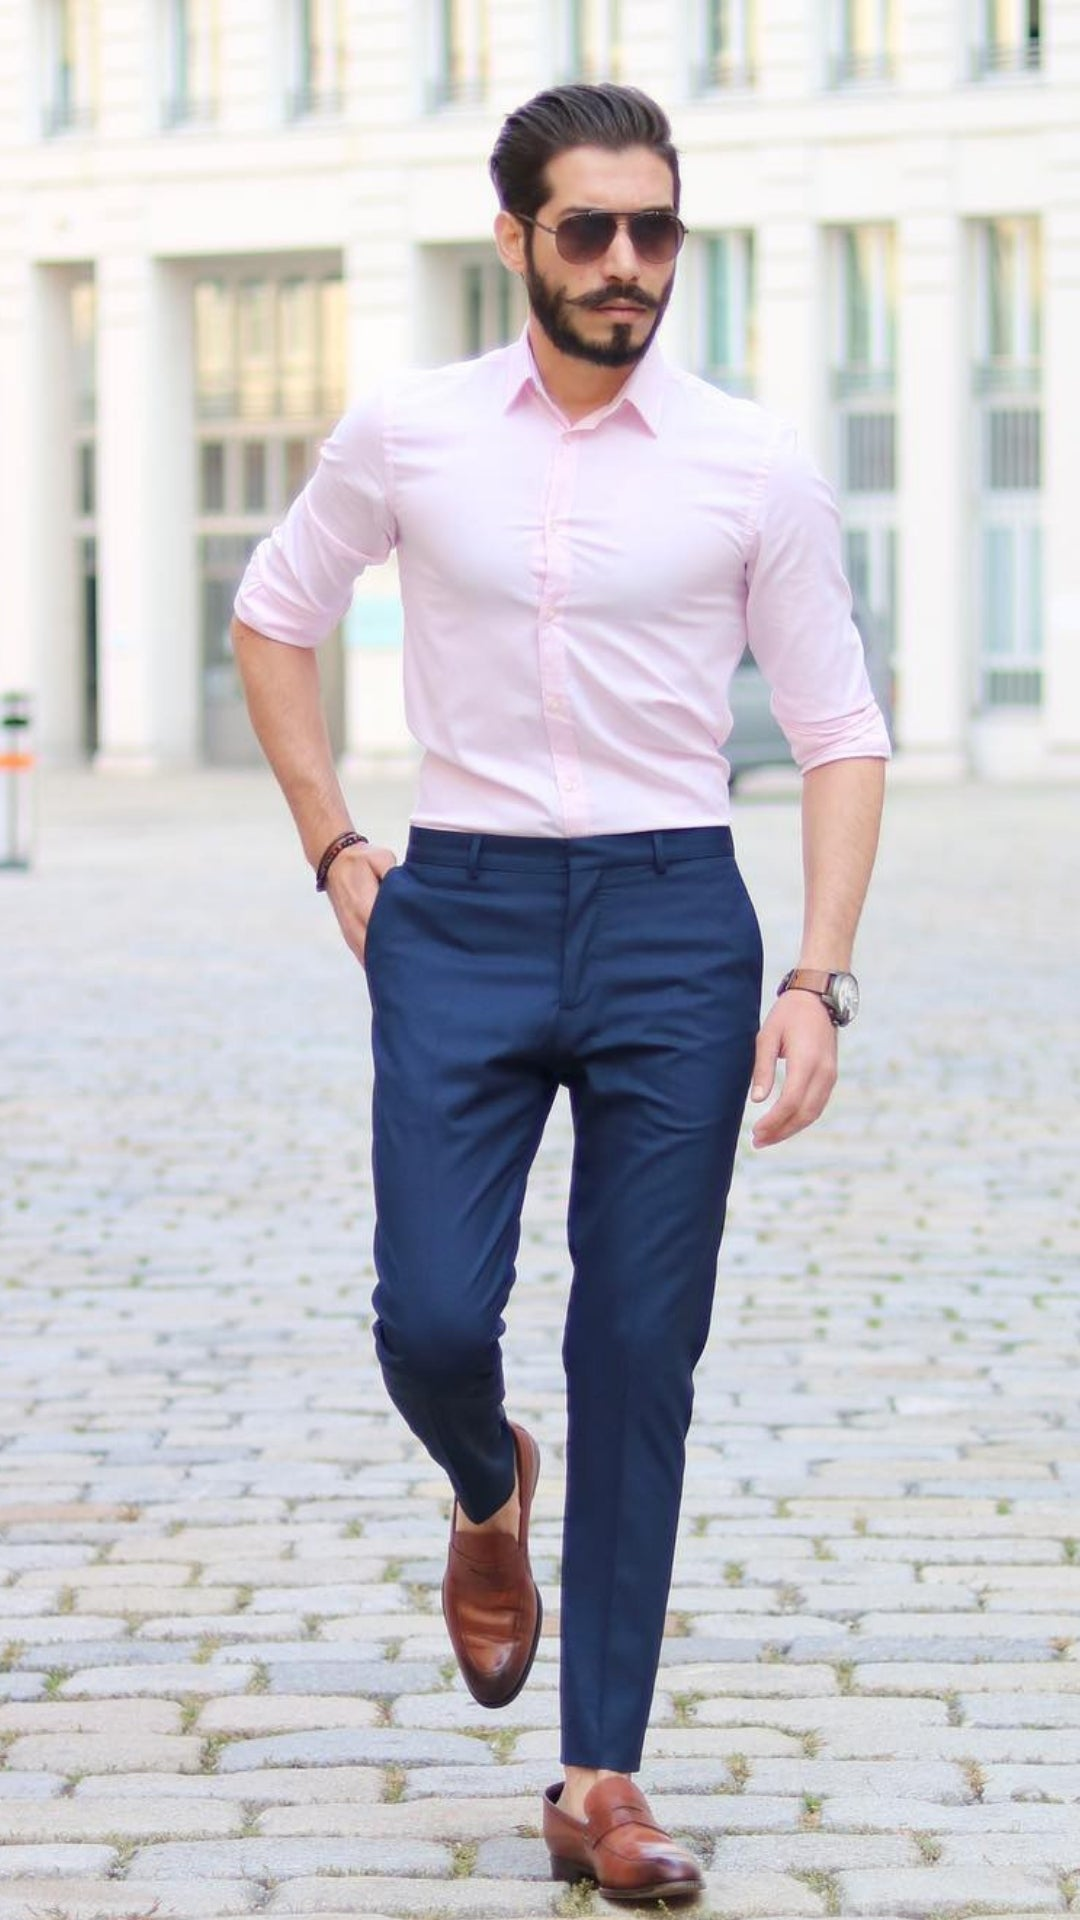 f99a6f38d8 5 Best Shirt And Pant Combinations For Men  shirts  pants  mens  fashion